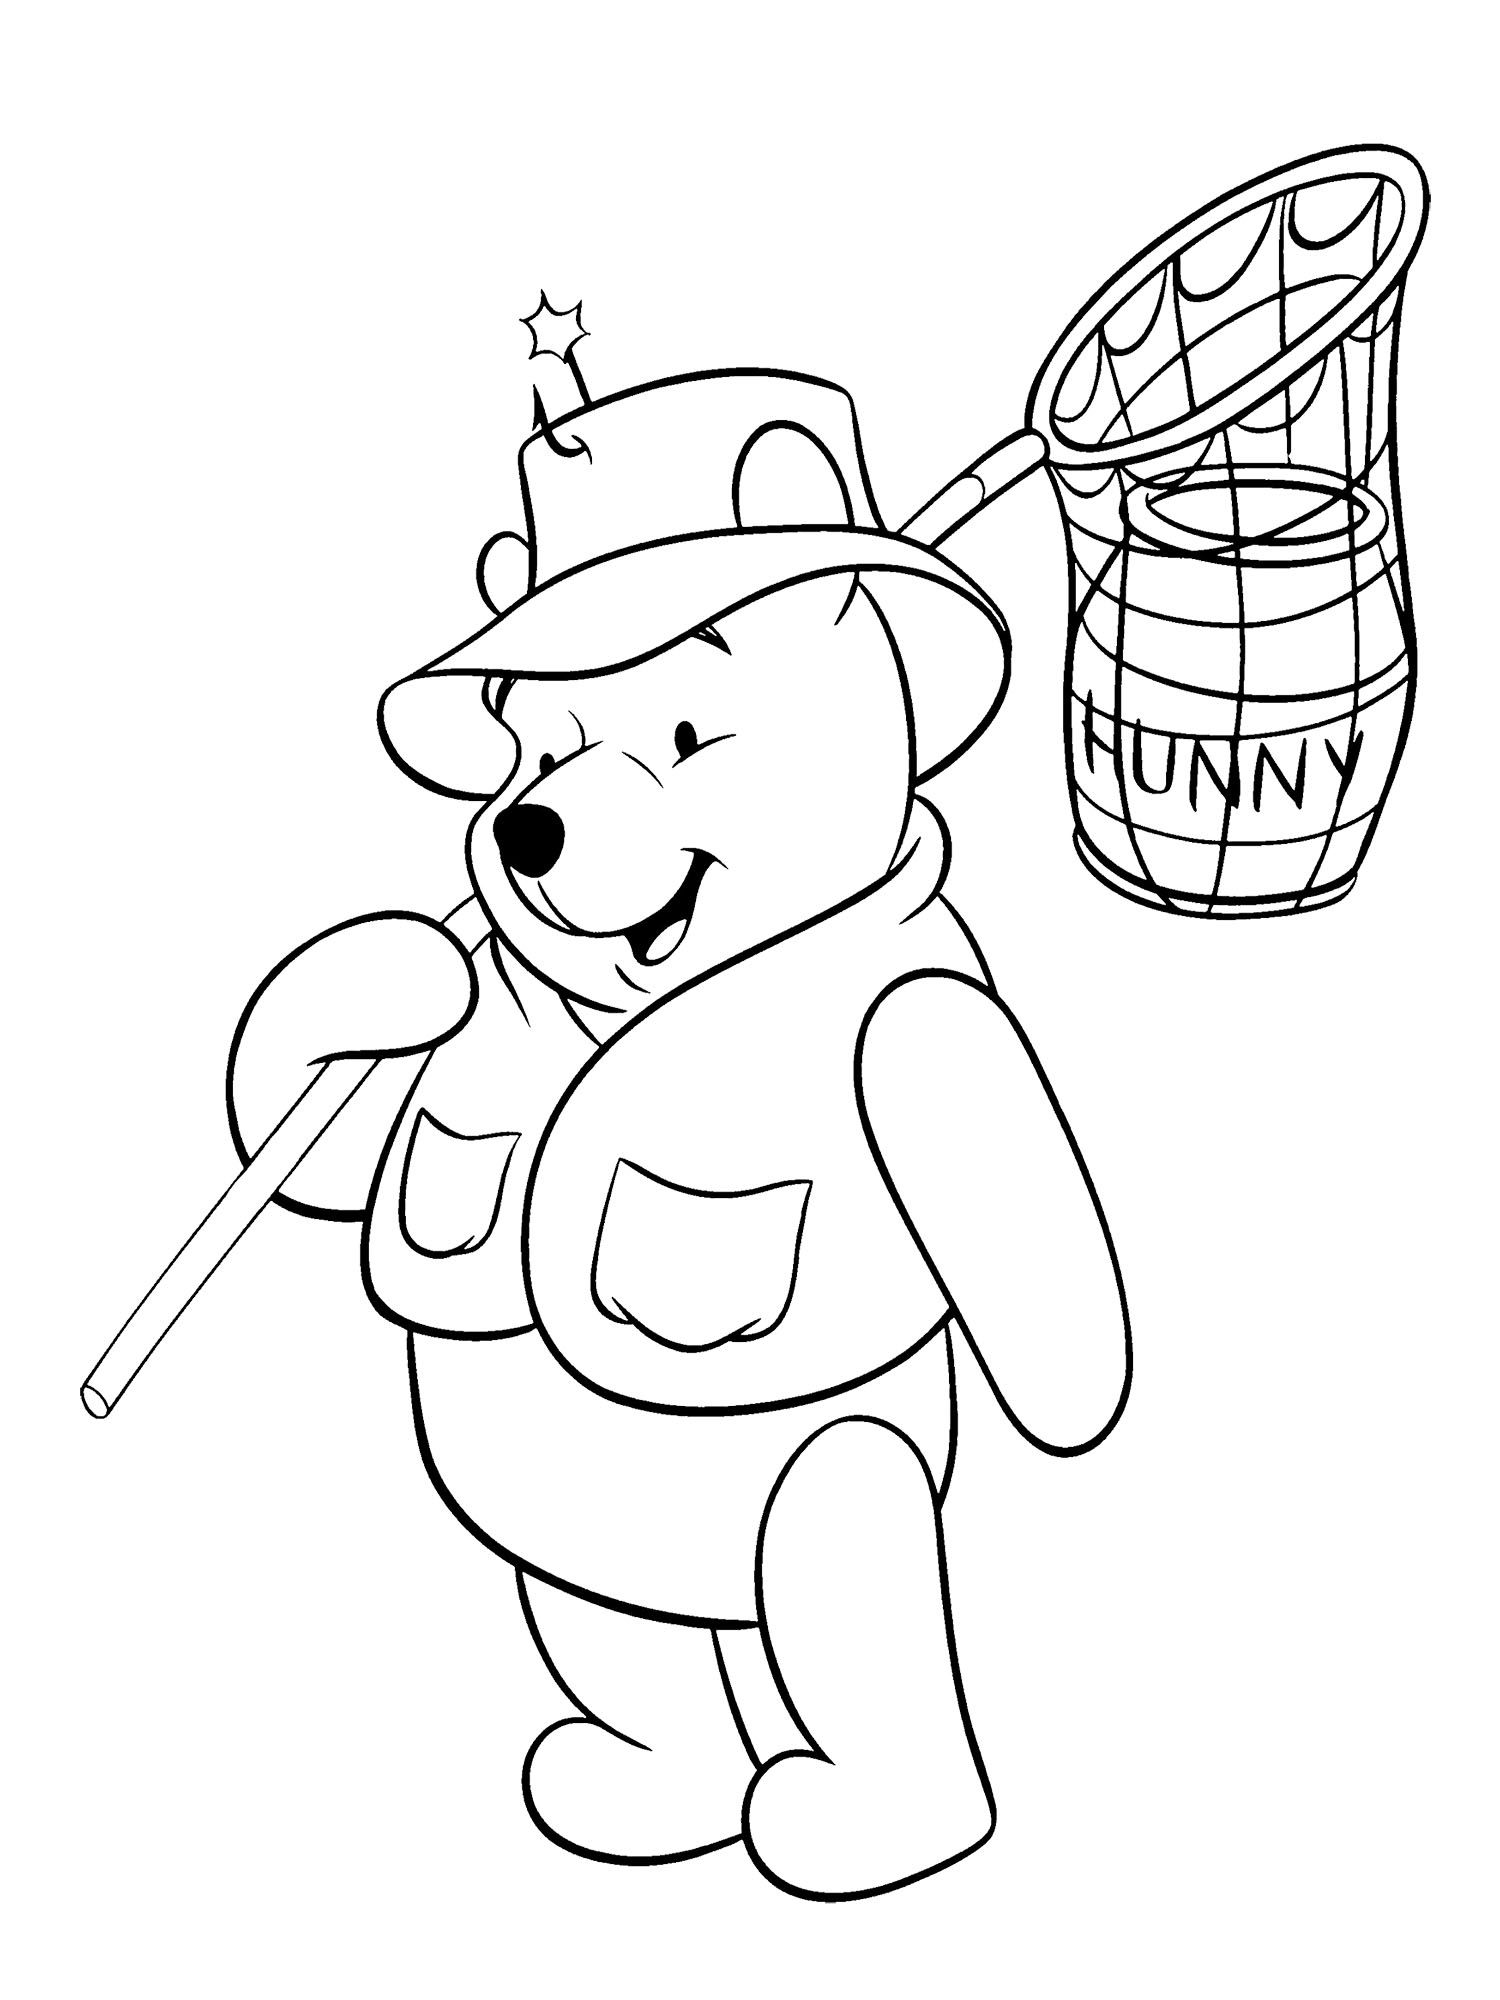 Winnie the pooh looking for food coloring page dessins pinterest